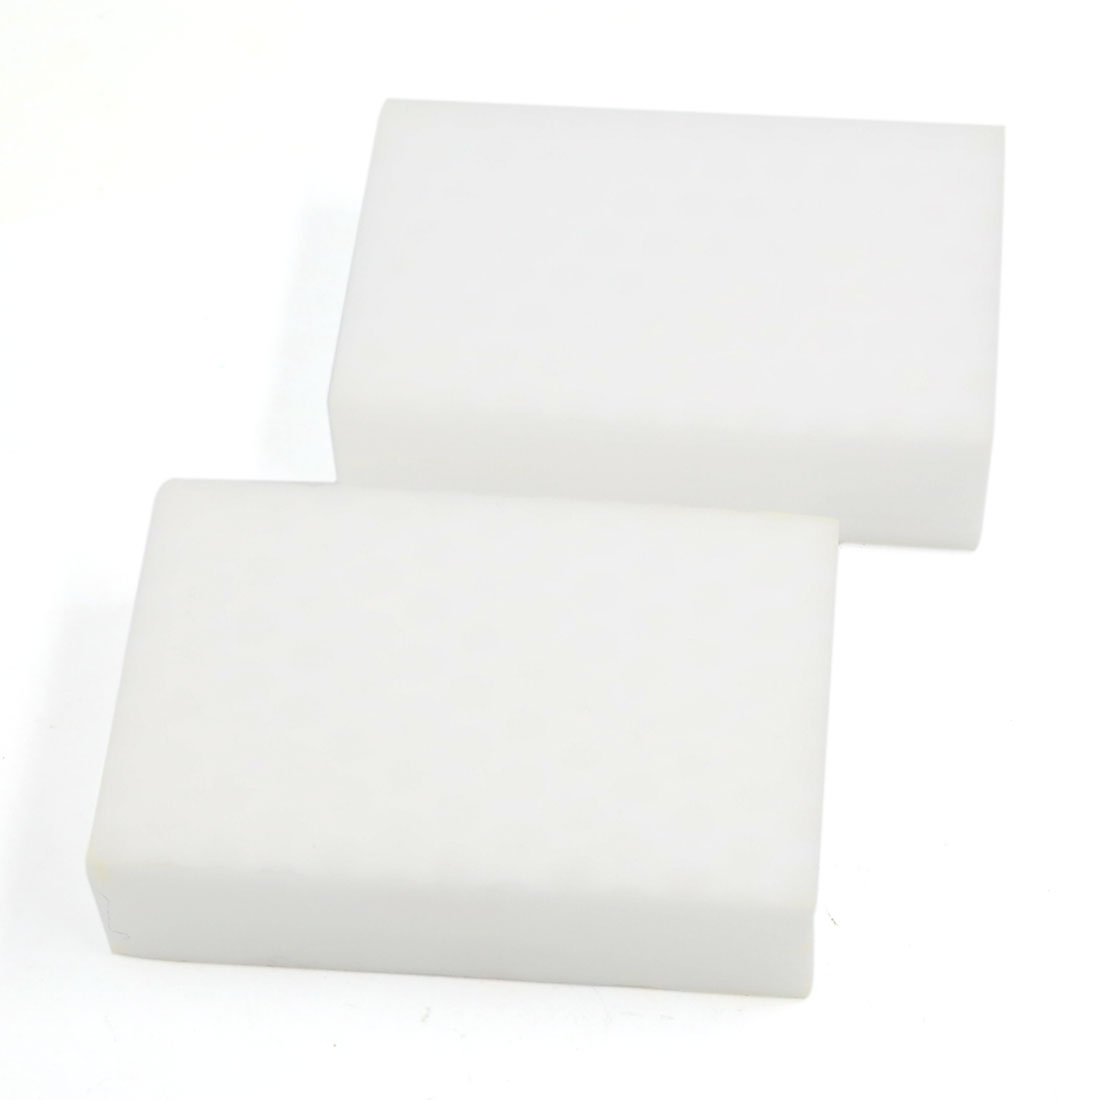 Home Furniture Office Boat Auto Car Sponge Block Cleaning Tool White 2 Pcs